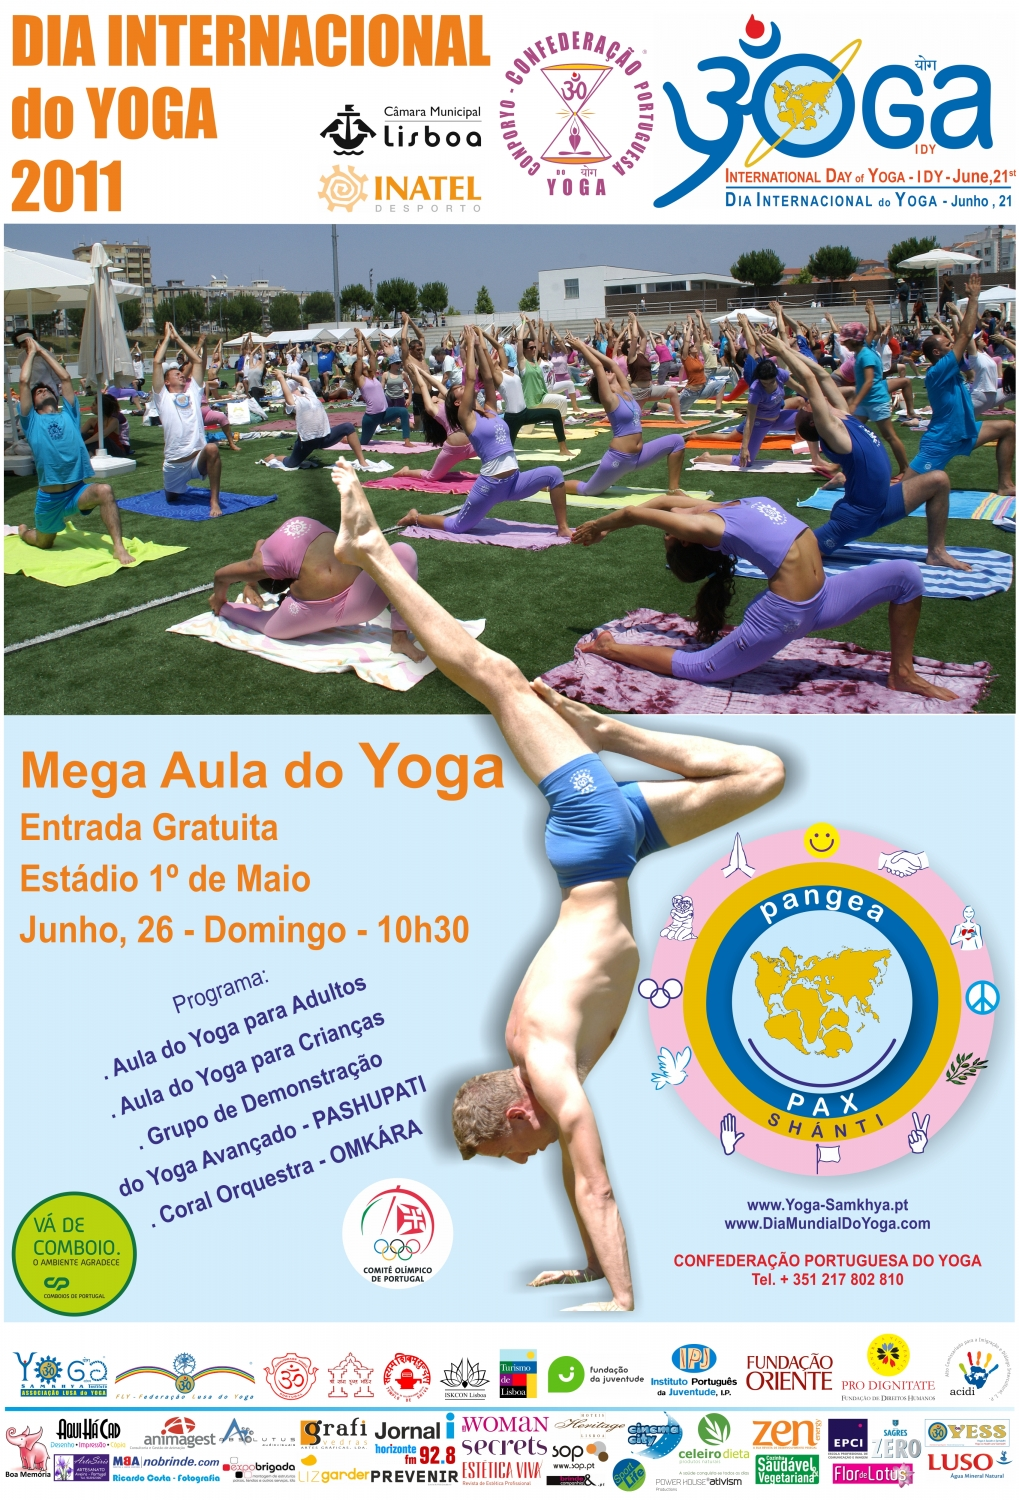 International Day of Yoga - IDY - 2011, Lisboa